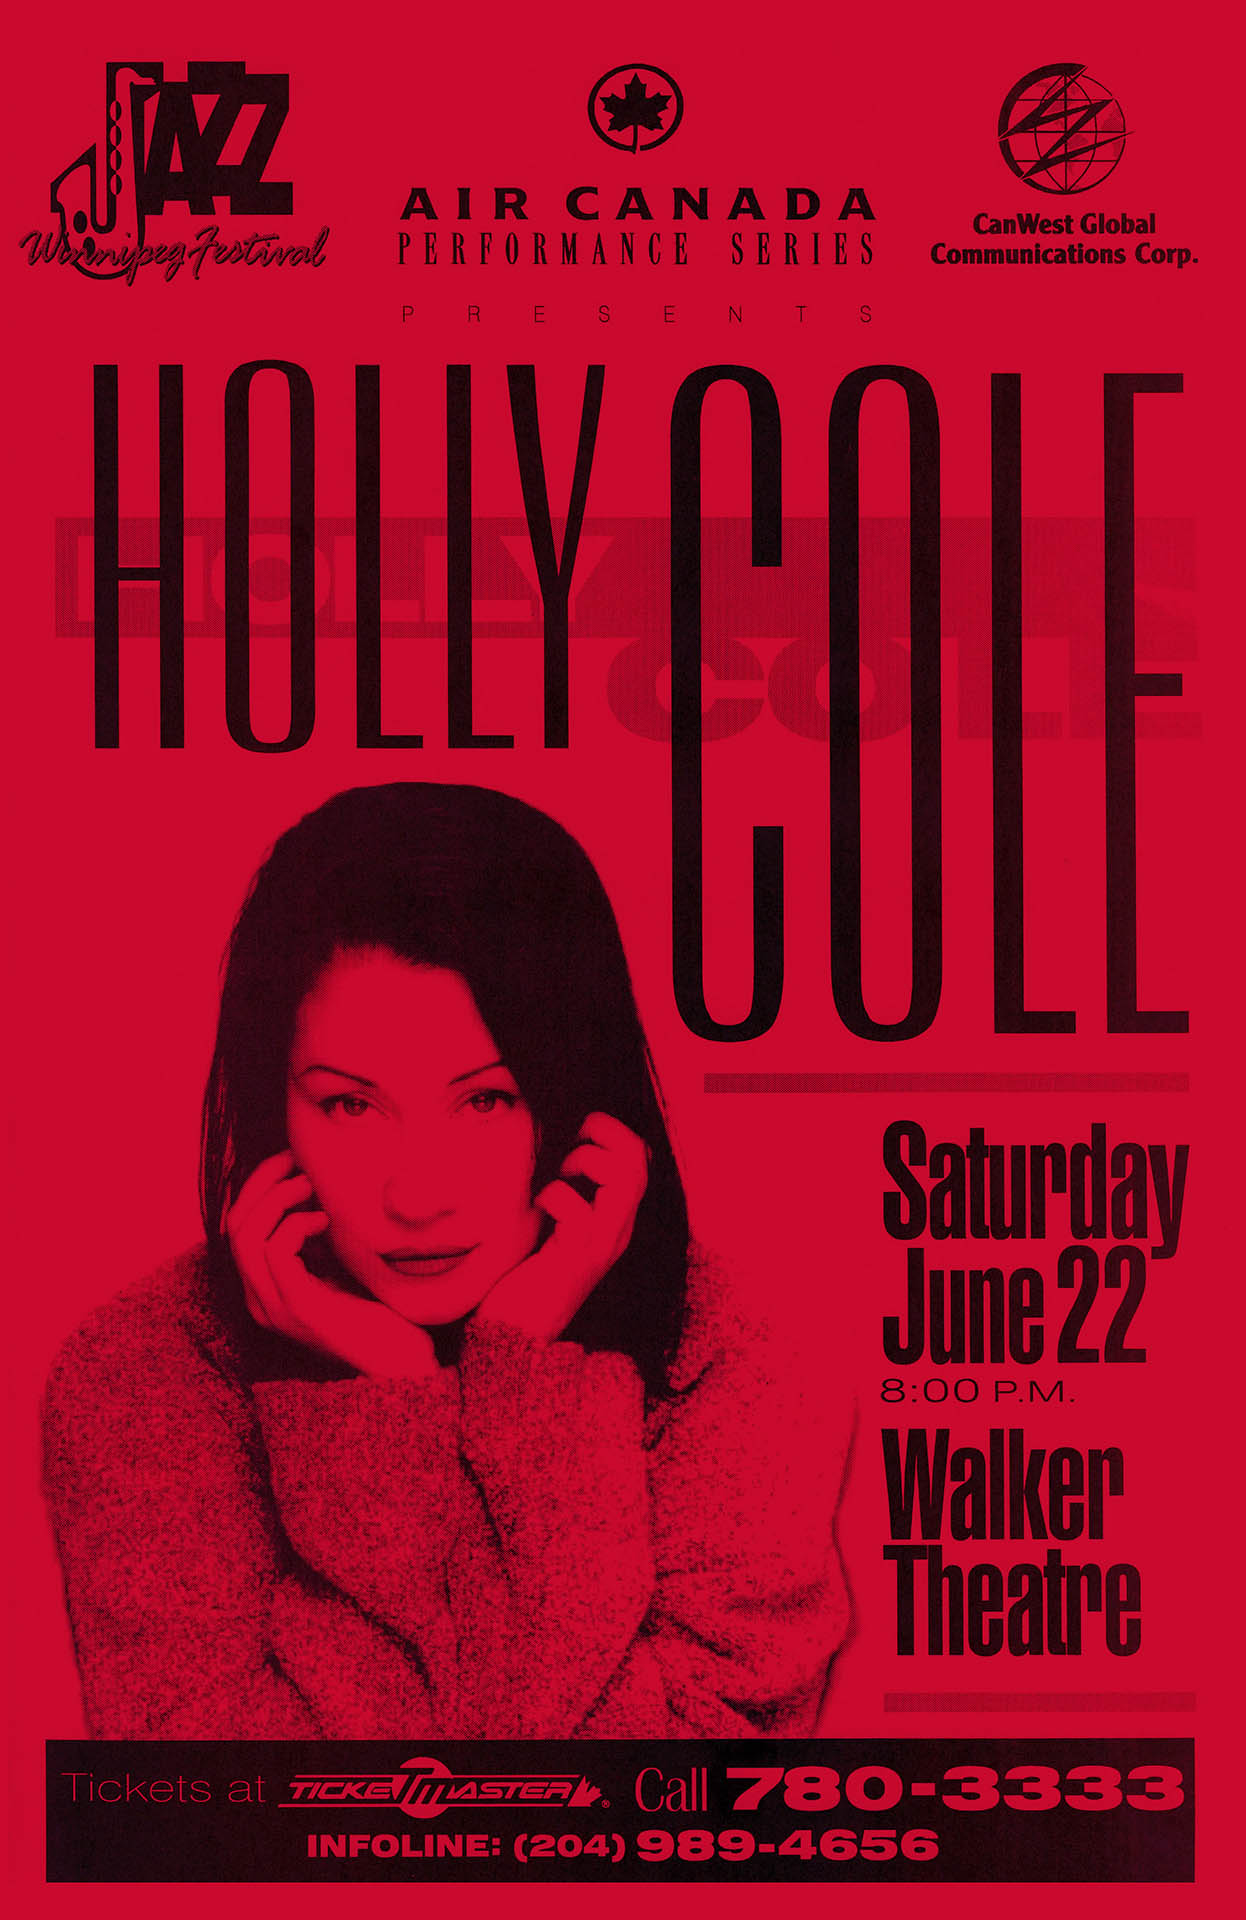 Holly Cole - 1996